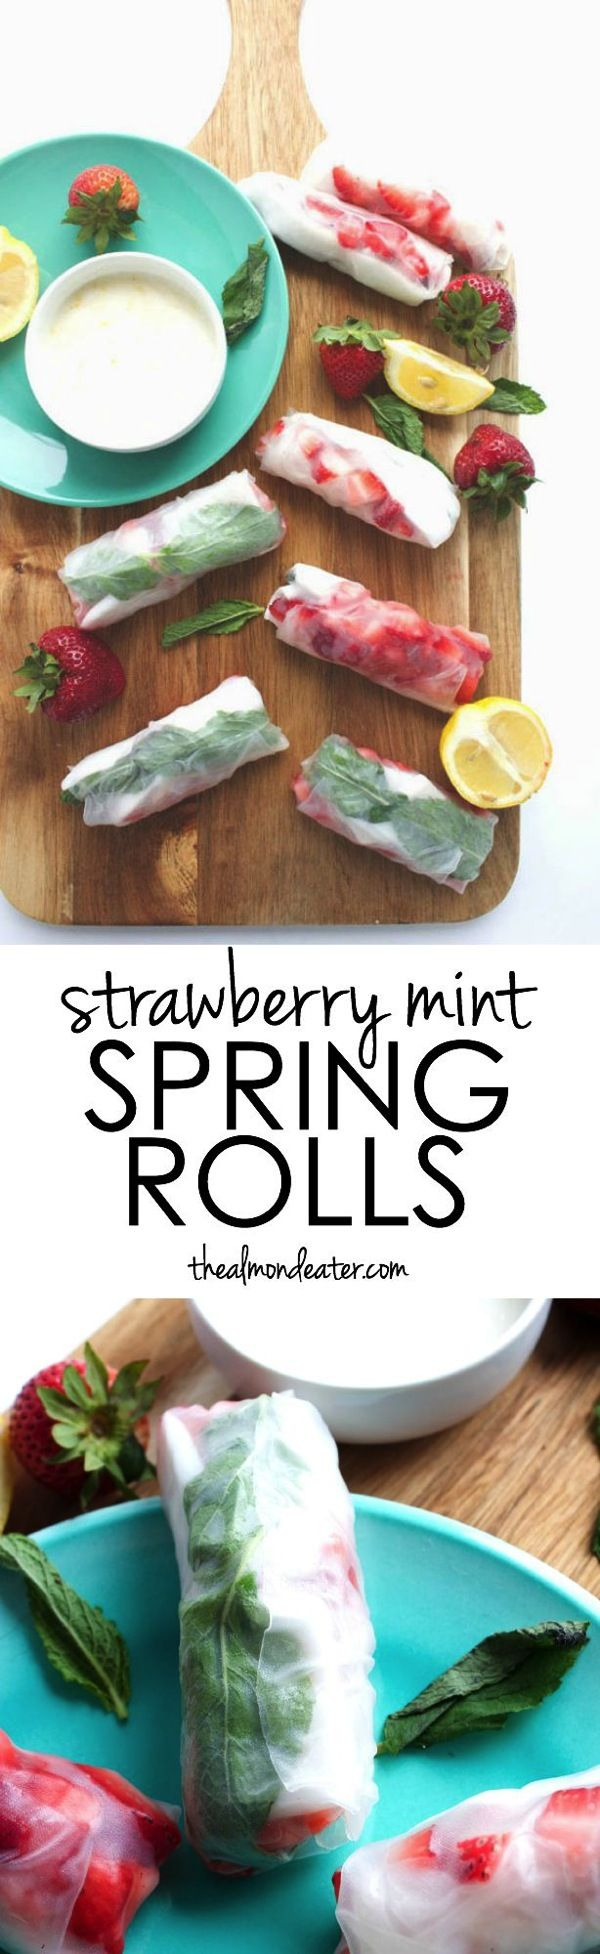 Strawberry Mint Spring Rolls   Strawberries, mint and fresh coconut meat combine in these spring rolls and are dipped in coconut yogurt+lemon zest for a refreshing snack!   thealmondeater.com